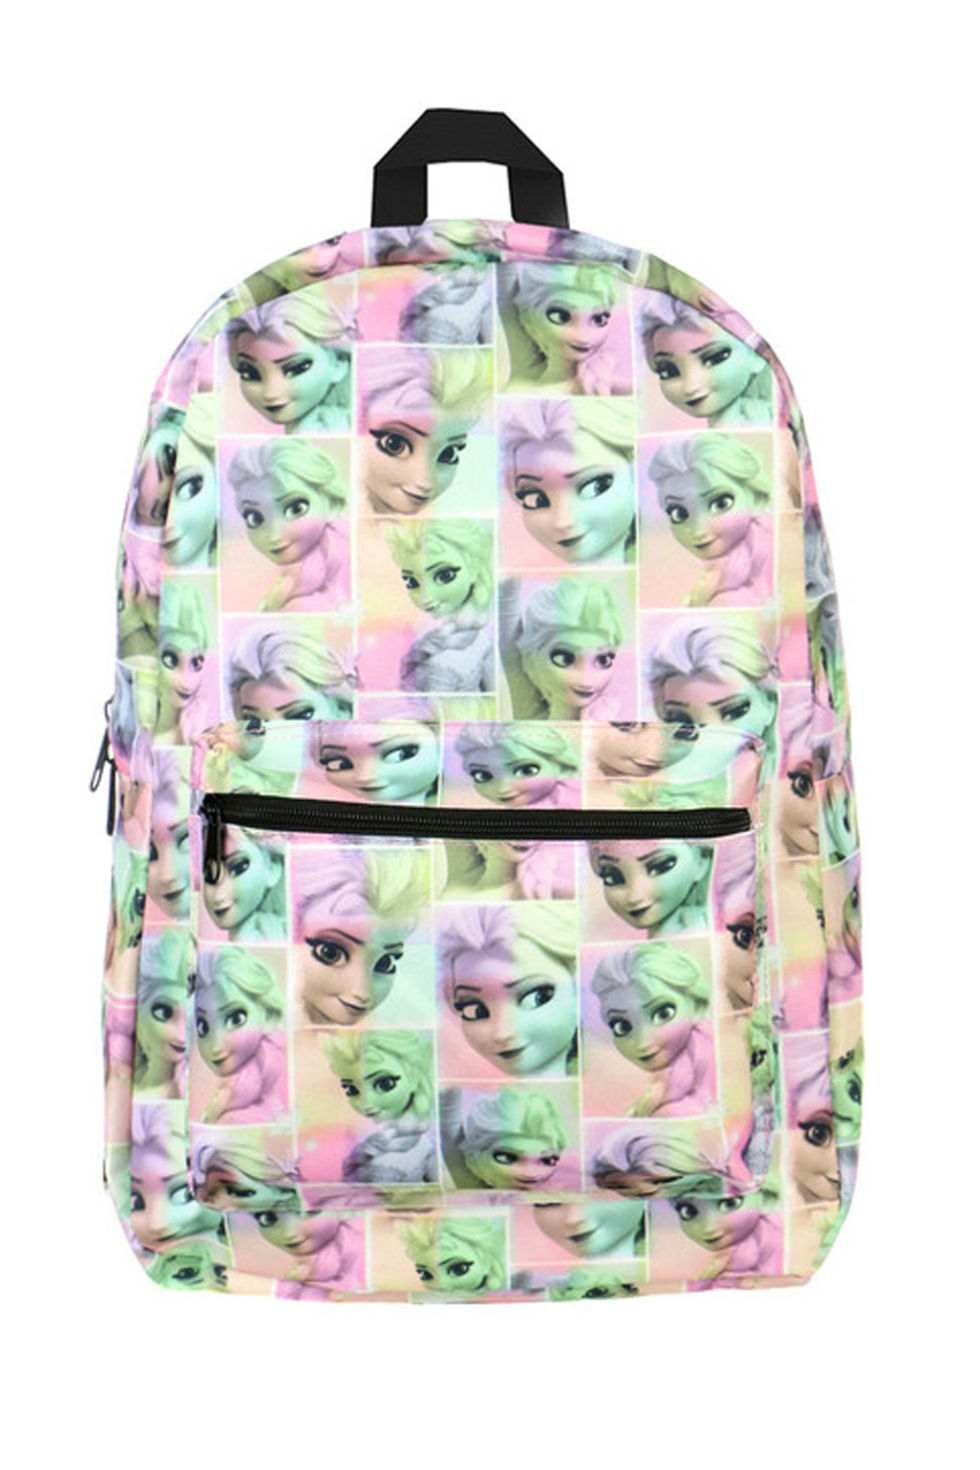 Cool Backpacks For Girls 55Inq87c